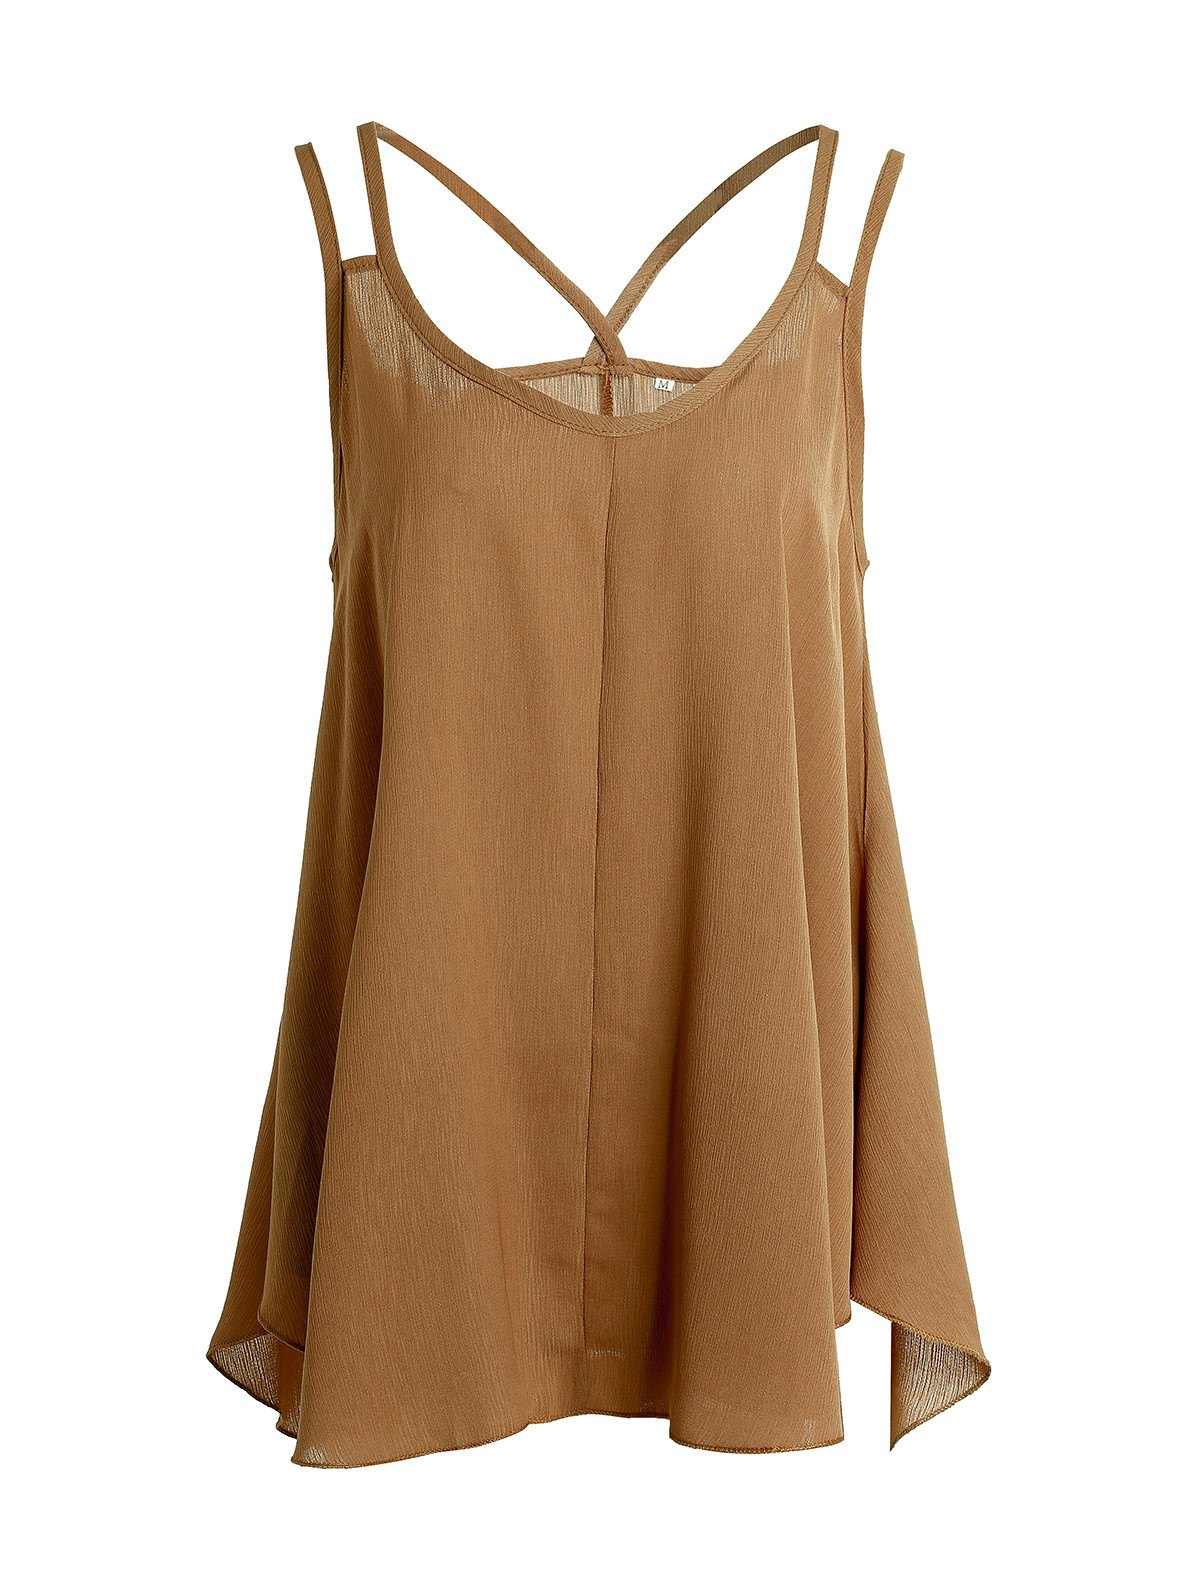 Fashionable Women's Strappy Asymmetrical Chiffon Tank Top - DARK KHAKI XL